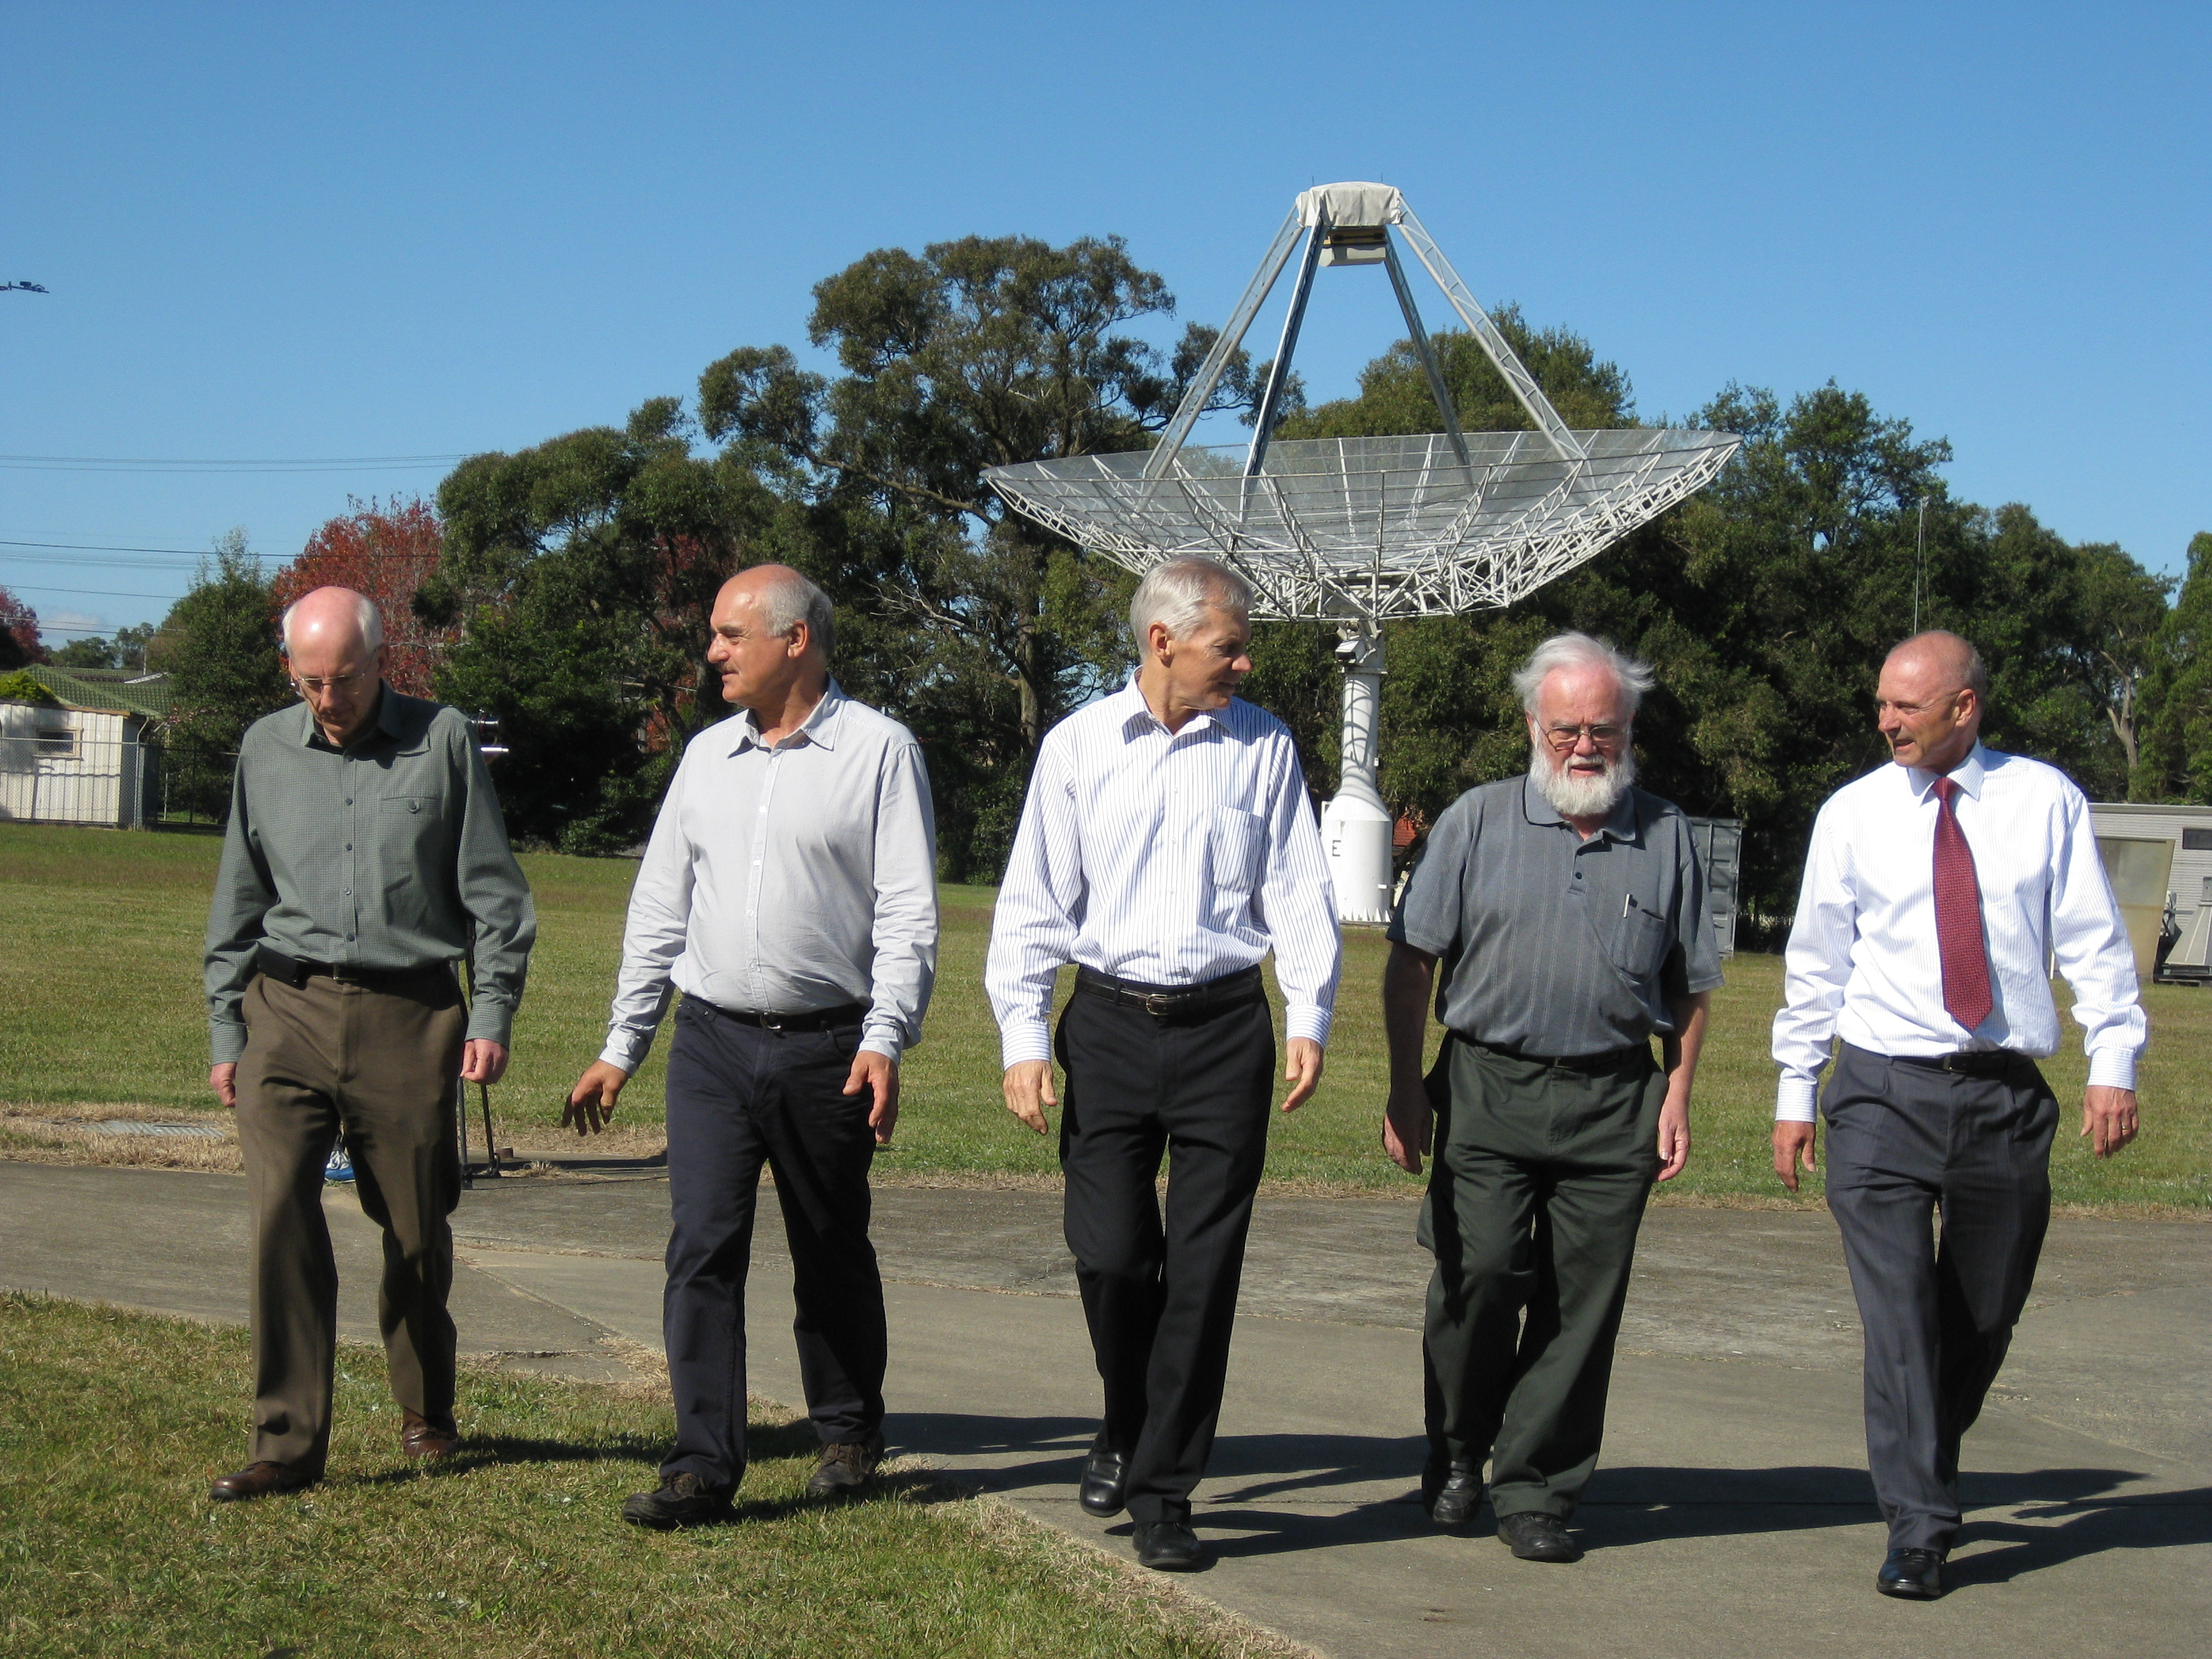 CSIRO's WLAN team in May 2012 walking together in front of a small radio telescope.